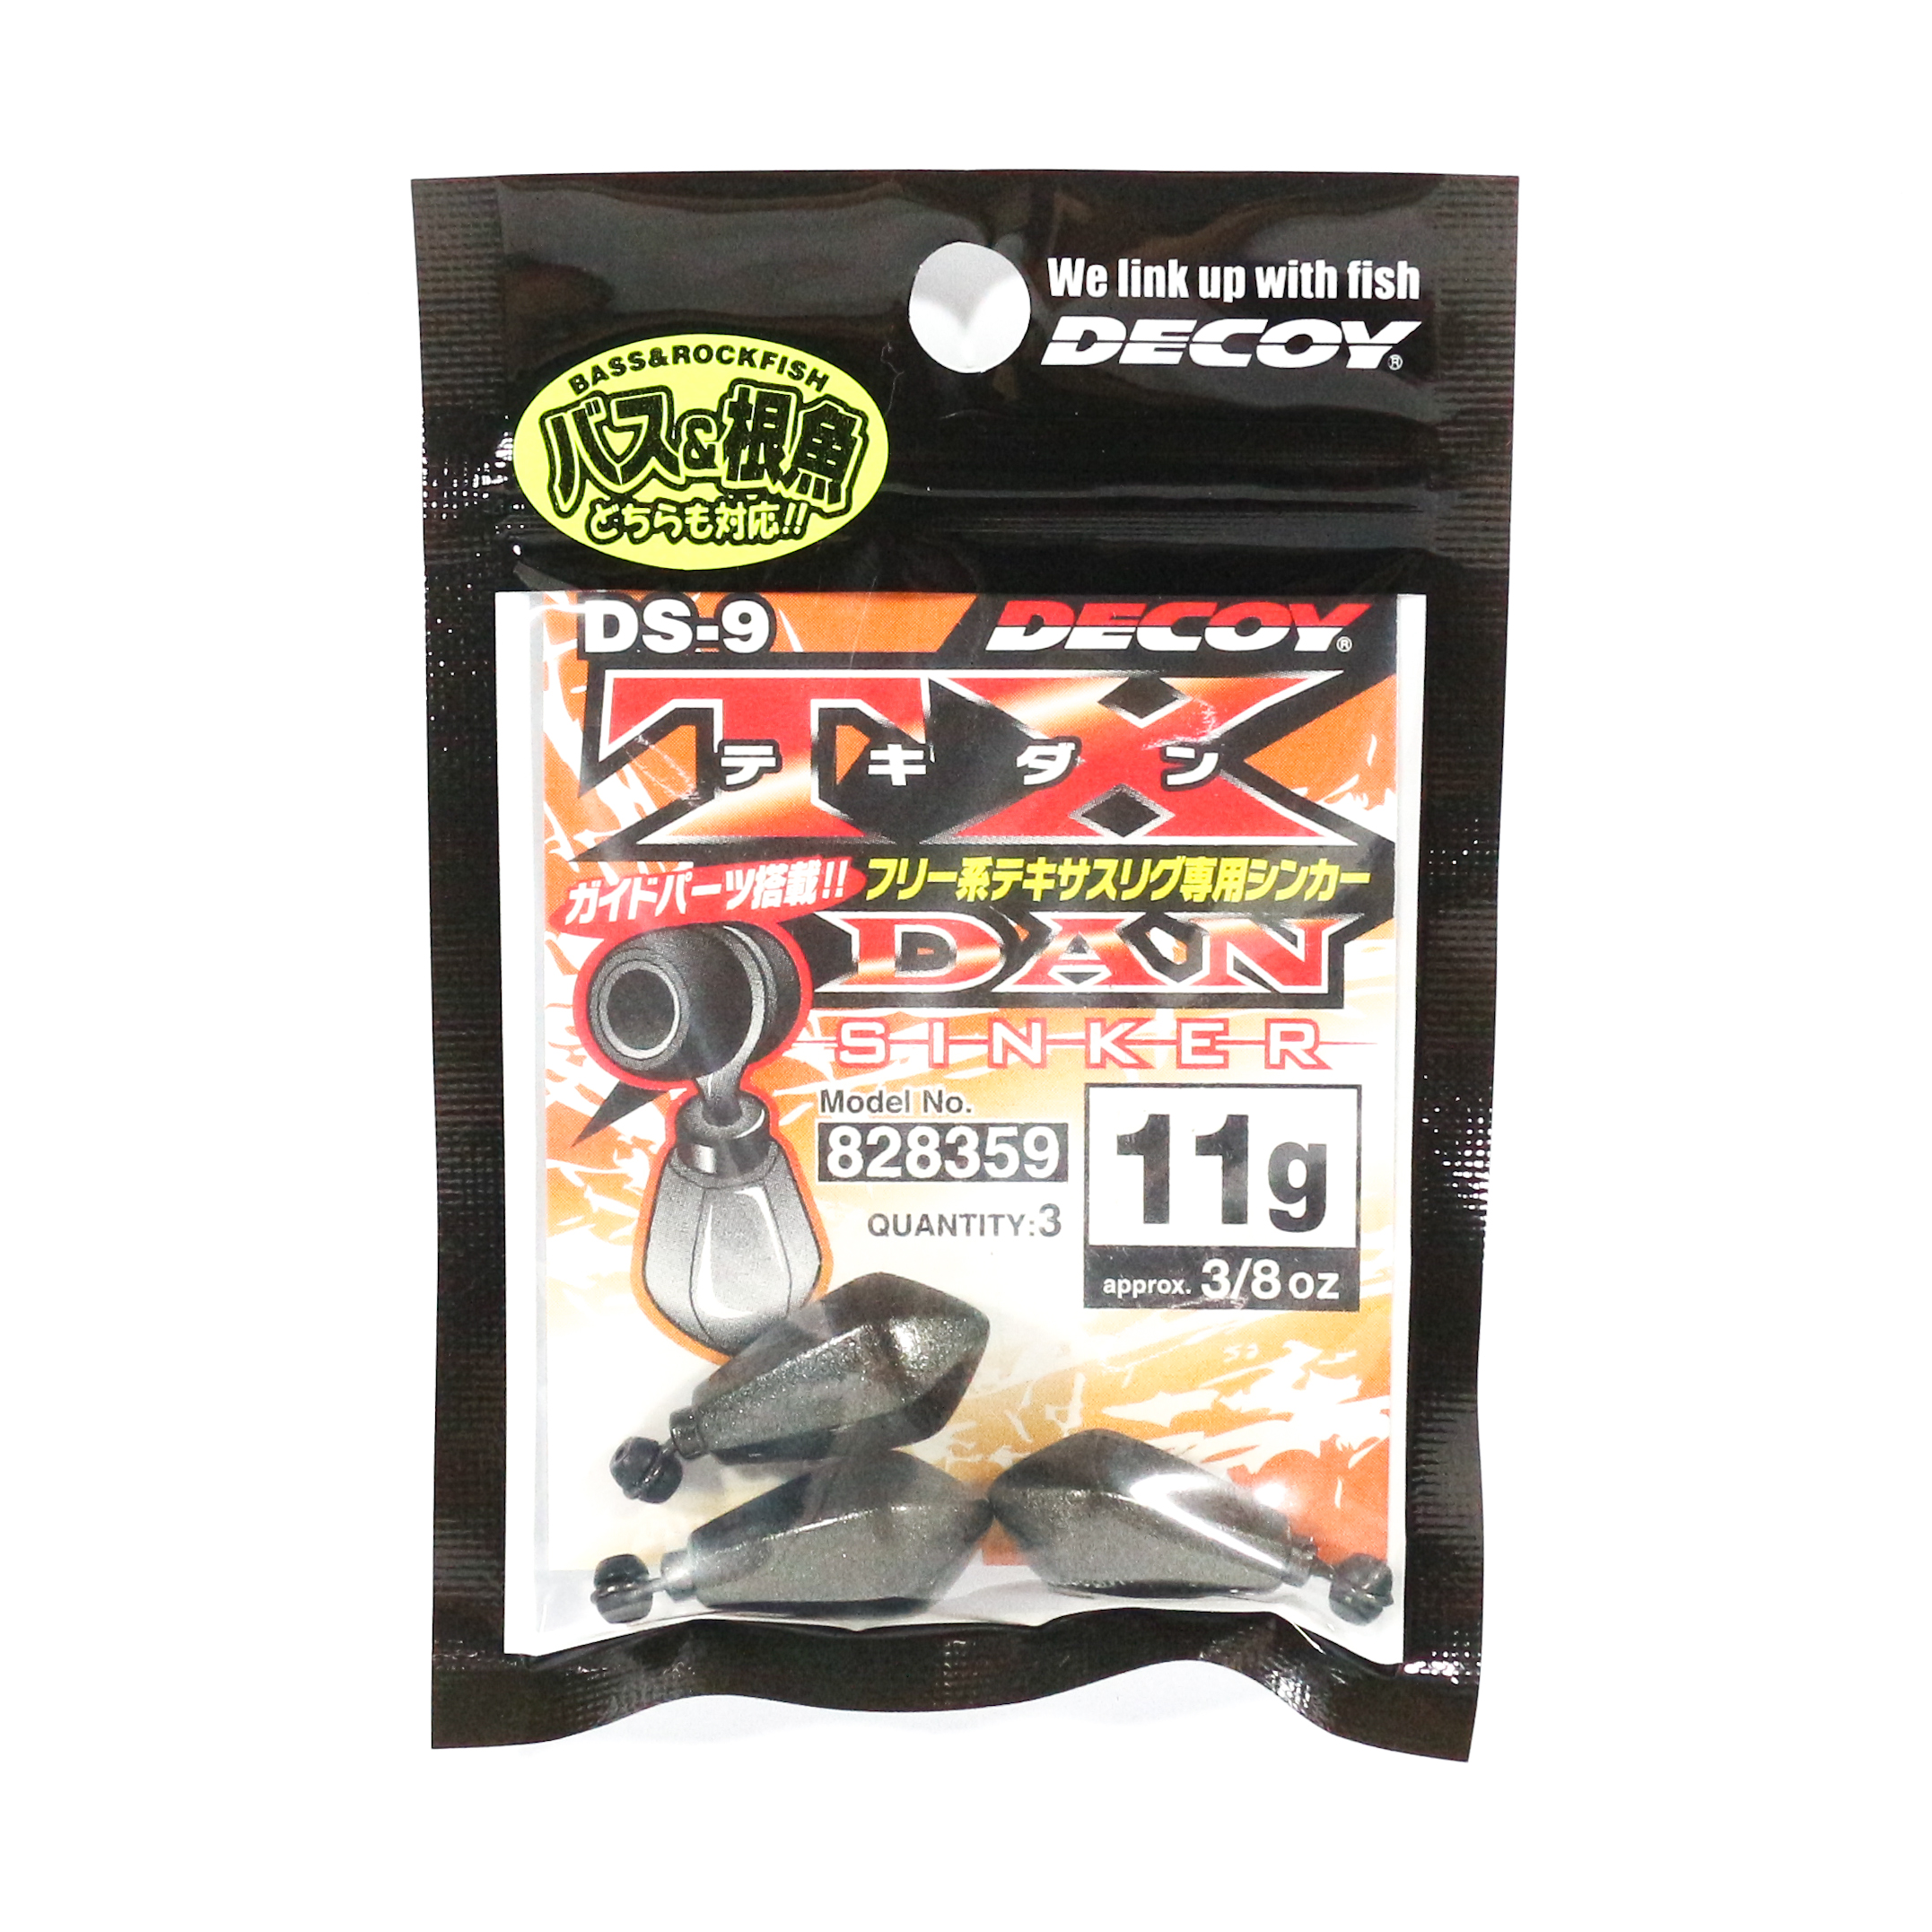 Decoy DS-9 Sinker Type TX Dan Sinker Size 11 grams (8359)